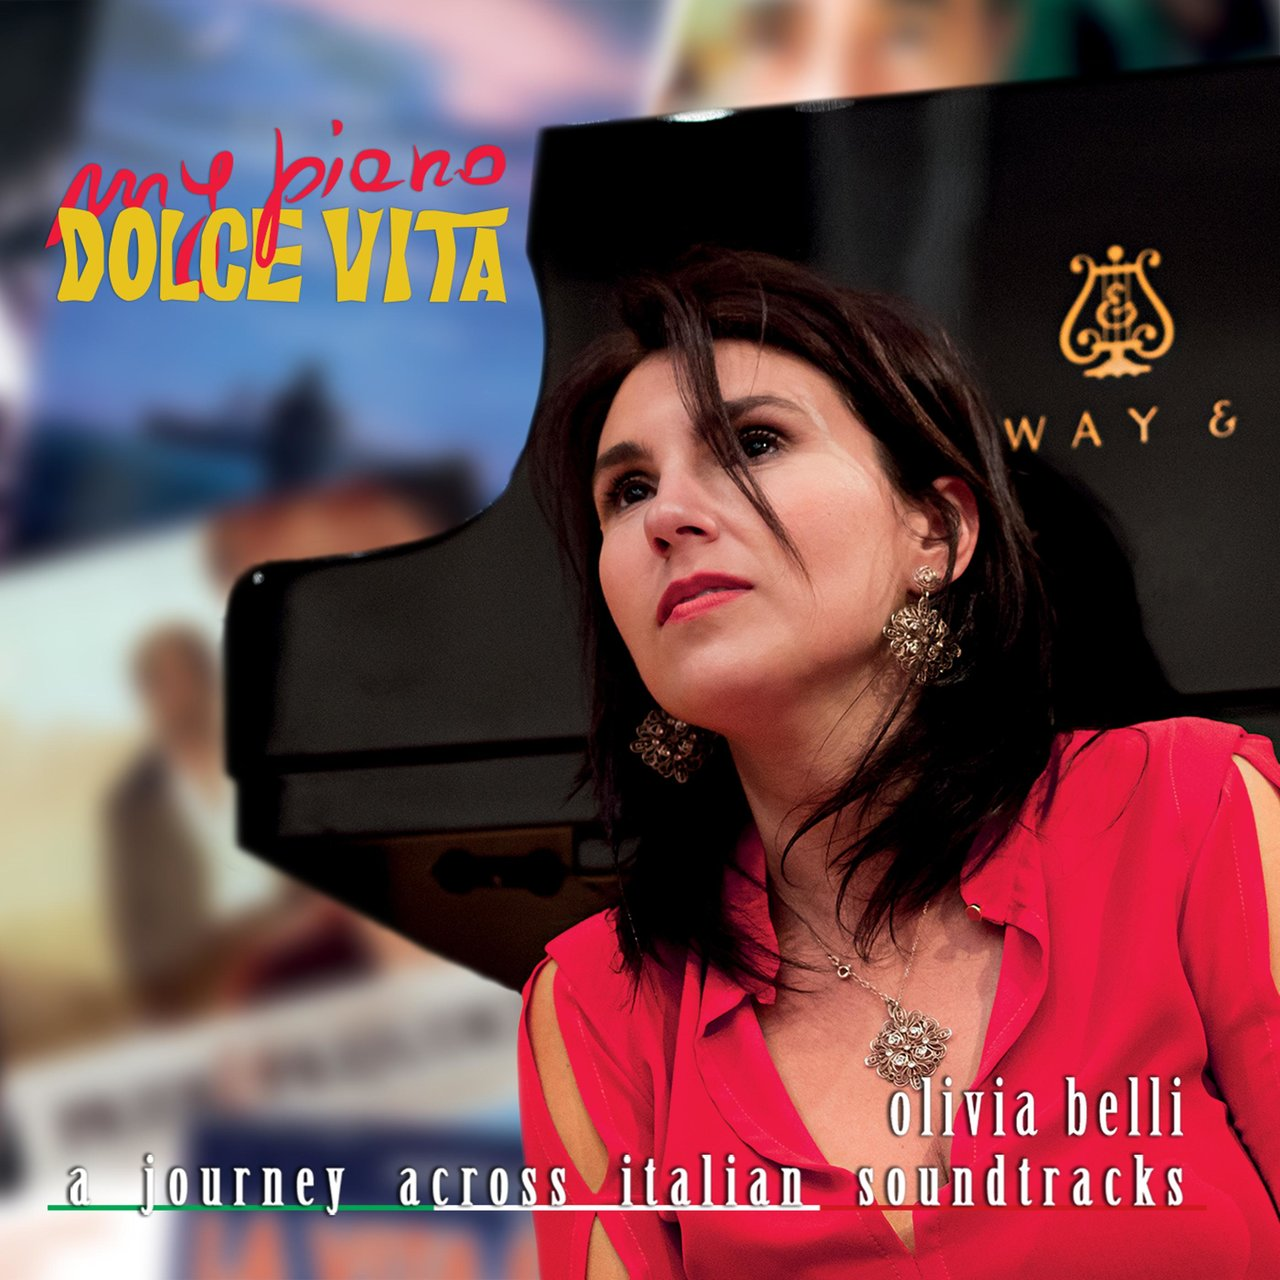 My Piano Dolce Vita: A Journey Across Italian Soundtracks